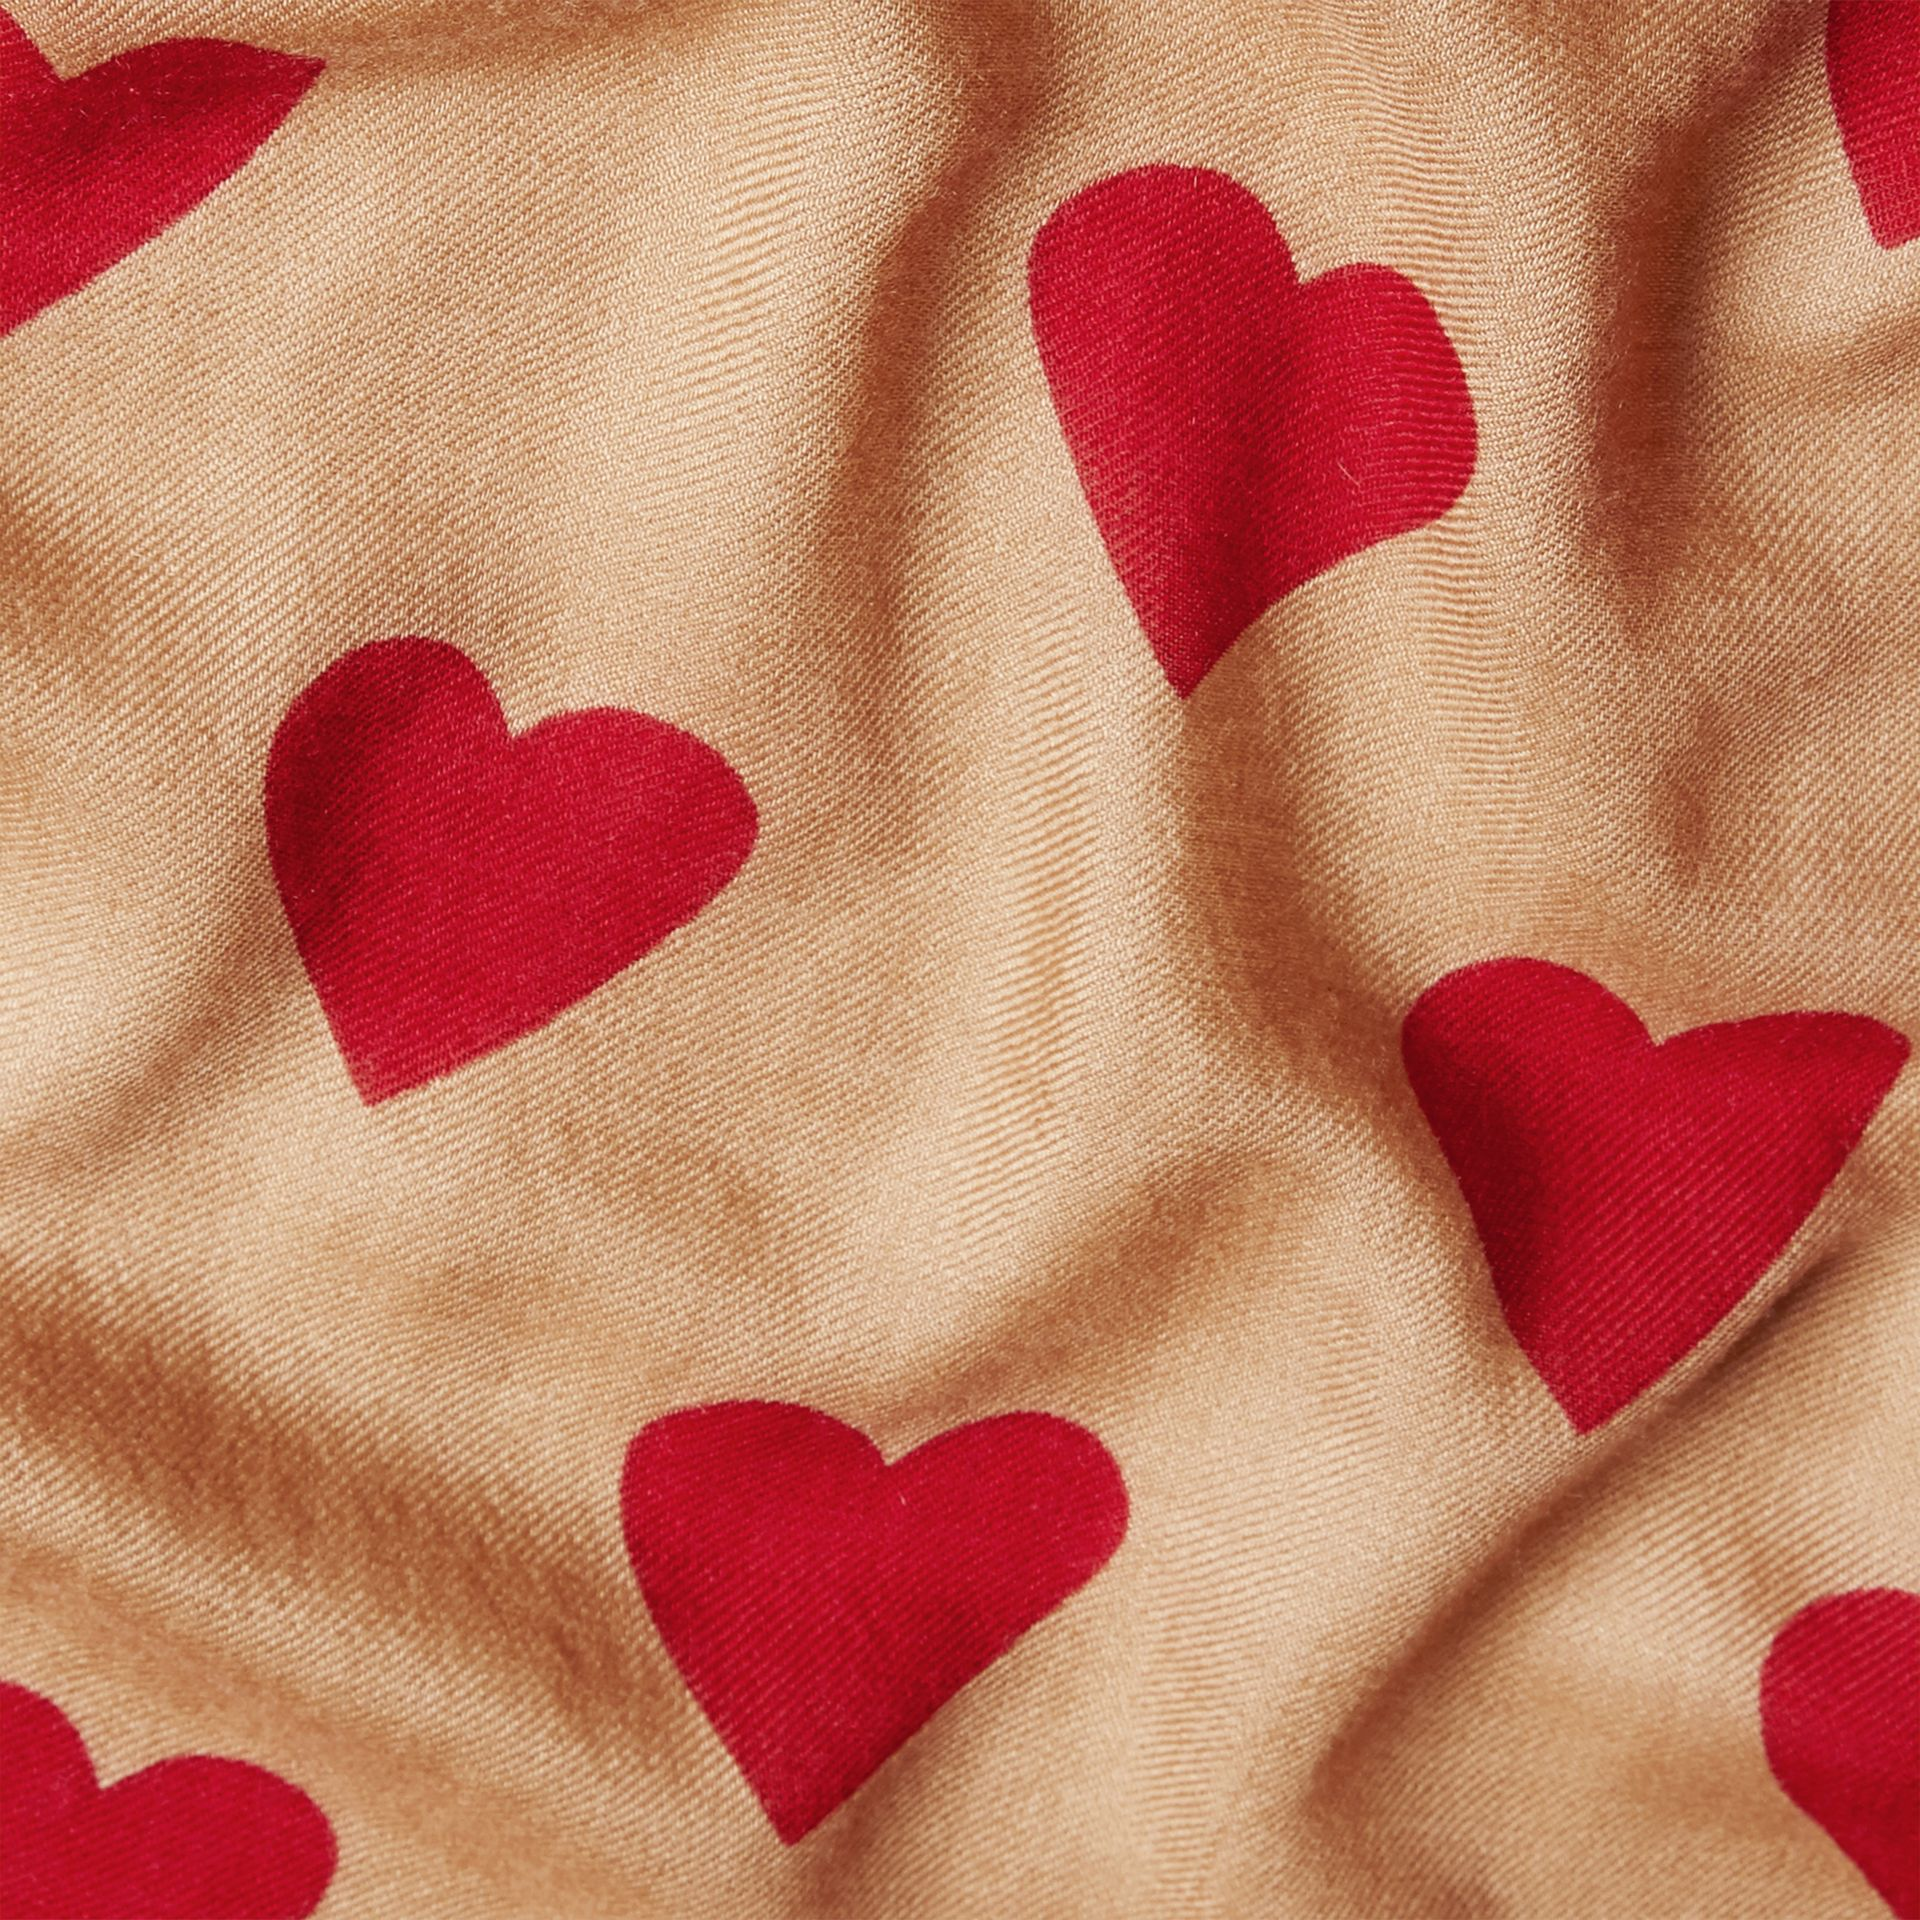 Camel/parade red The Lightweight Cashmere Scarf in Heart Print Camel/parade Red - gallery image 5